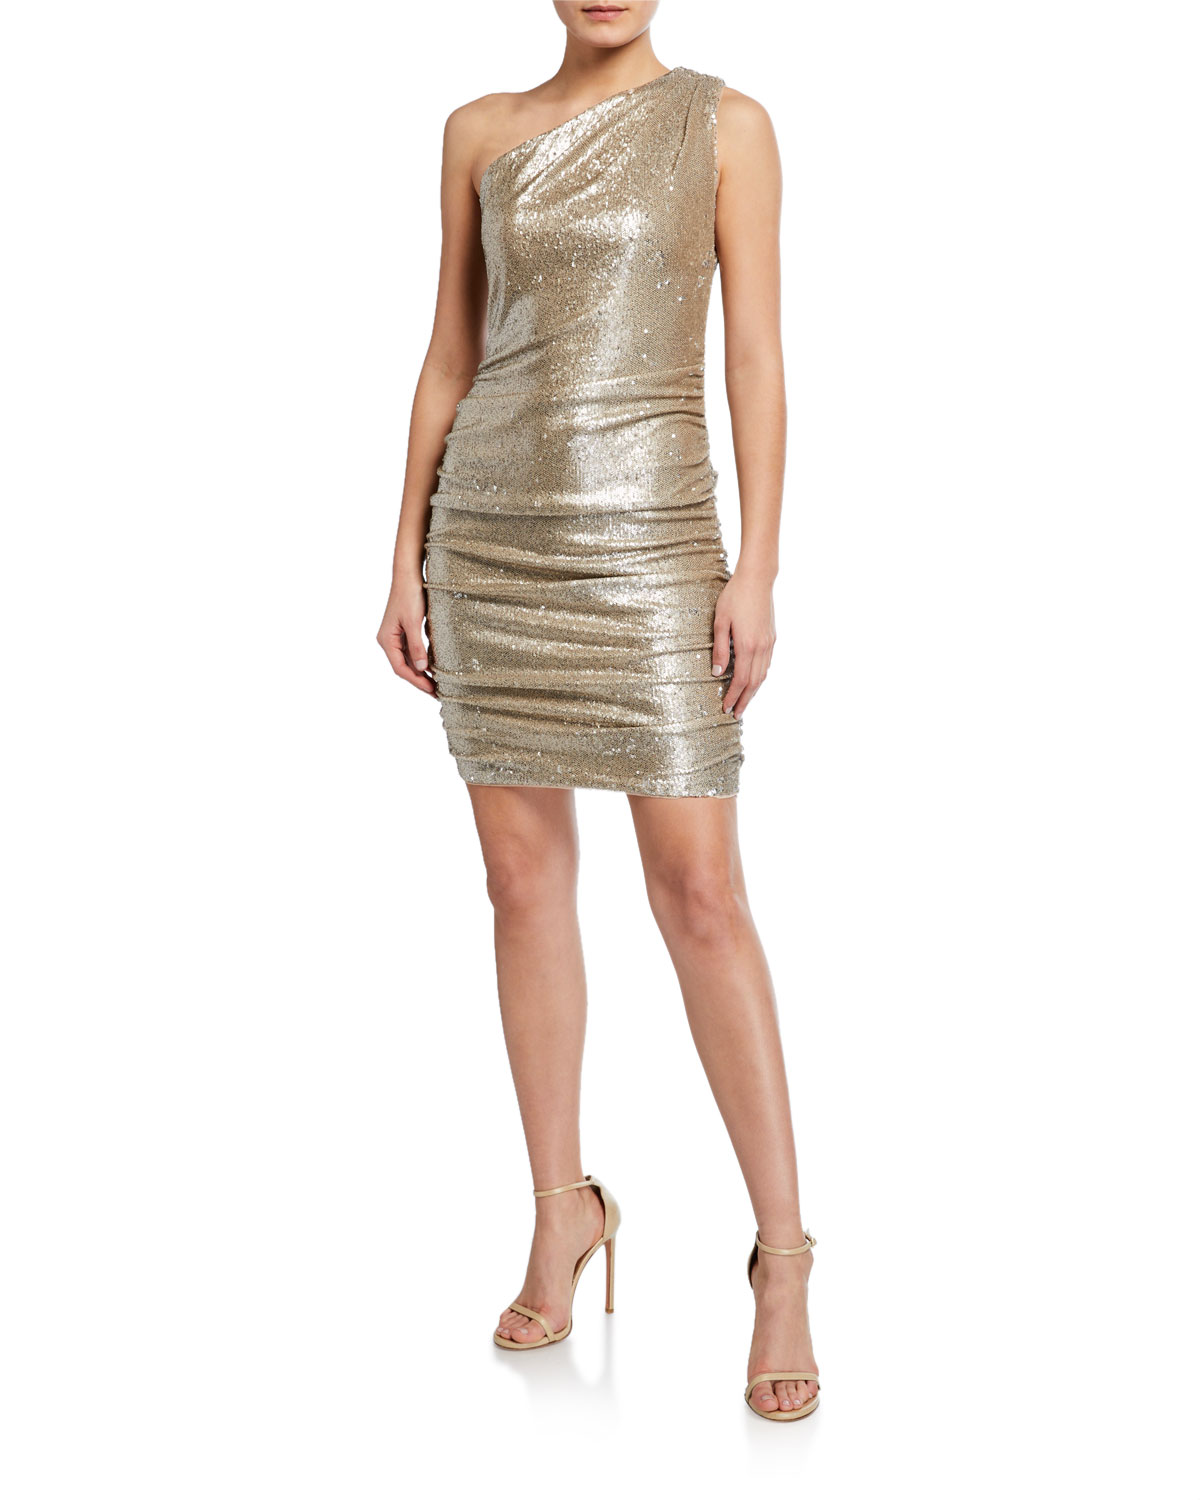 Aidan by Aidan Mattox Sequin One-Shoulder Dress w/ Ruched Sides